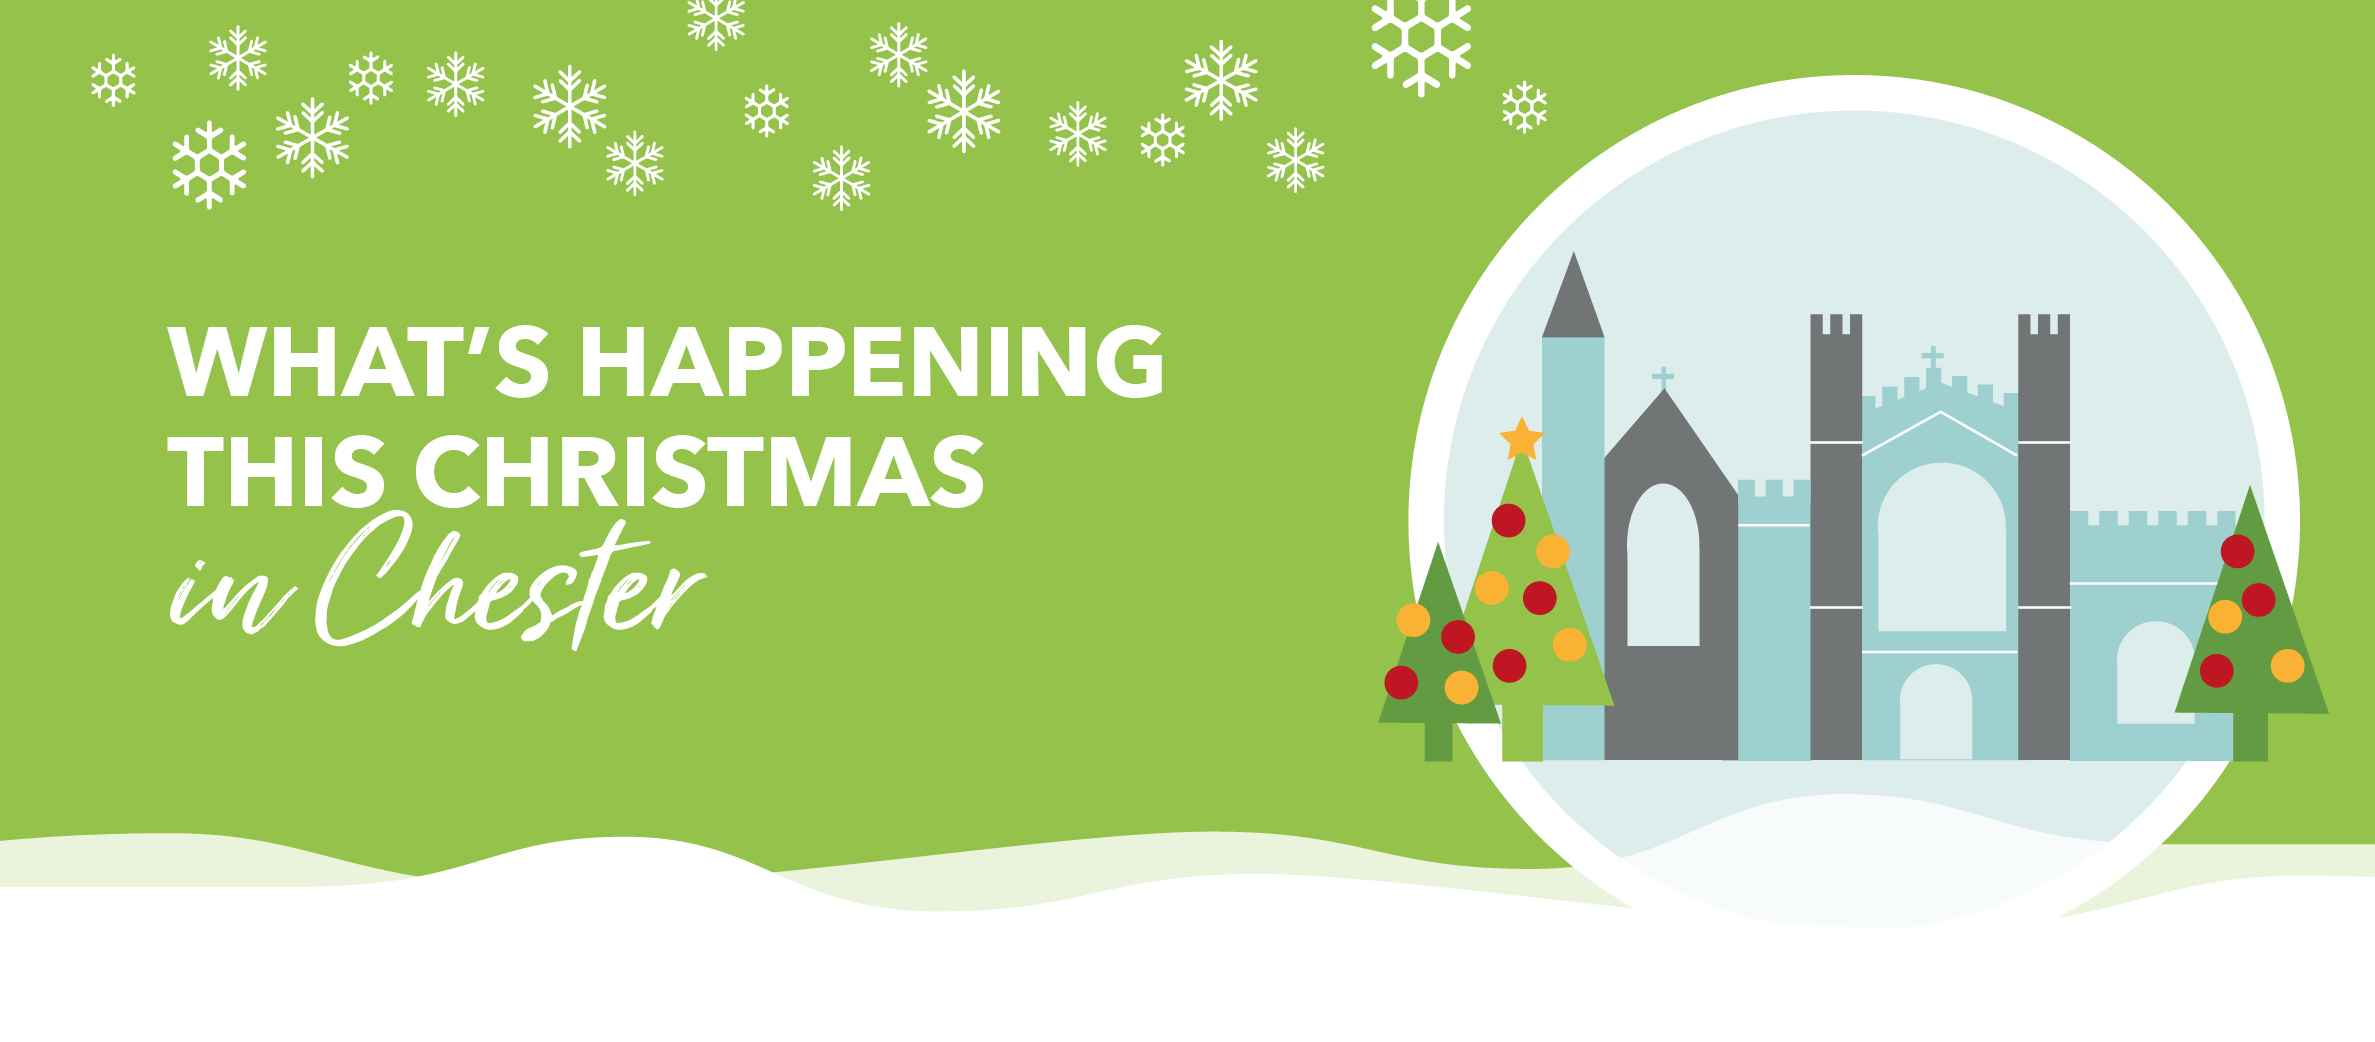 What's happening this Christmas in Chester